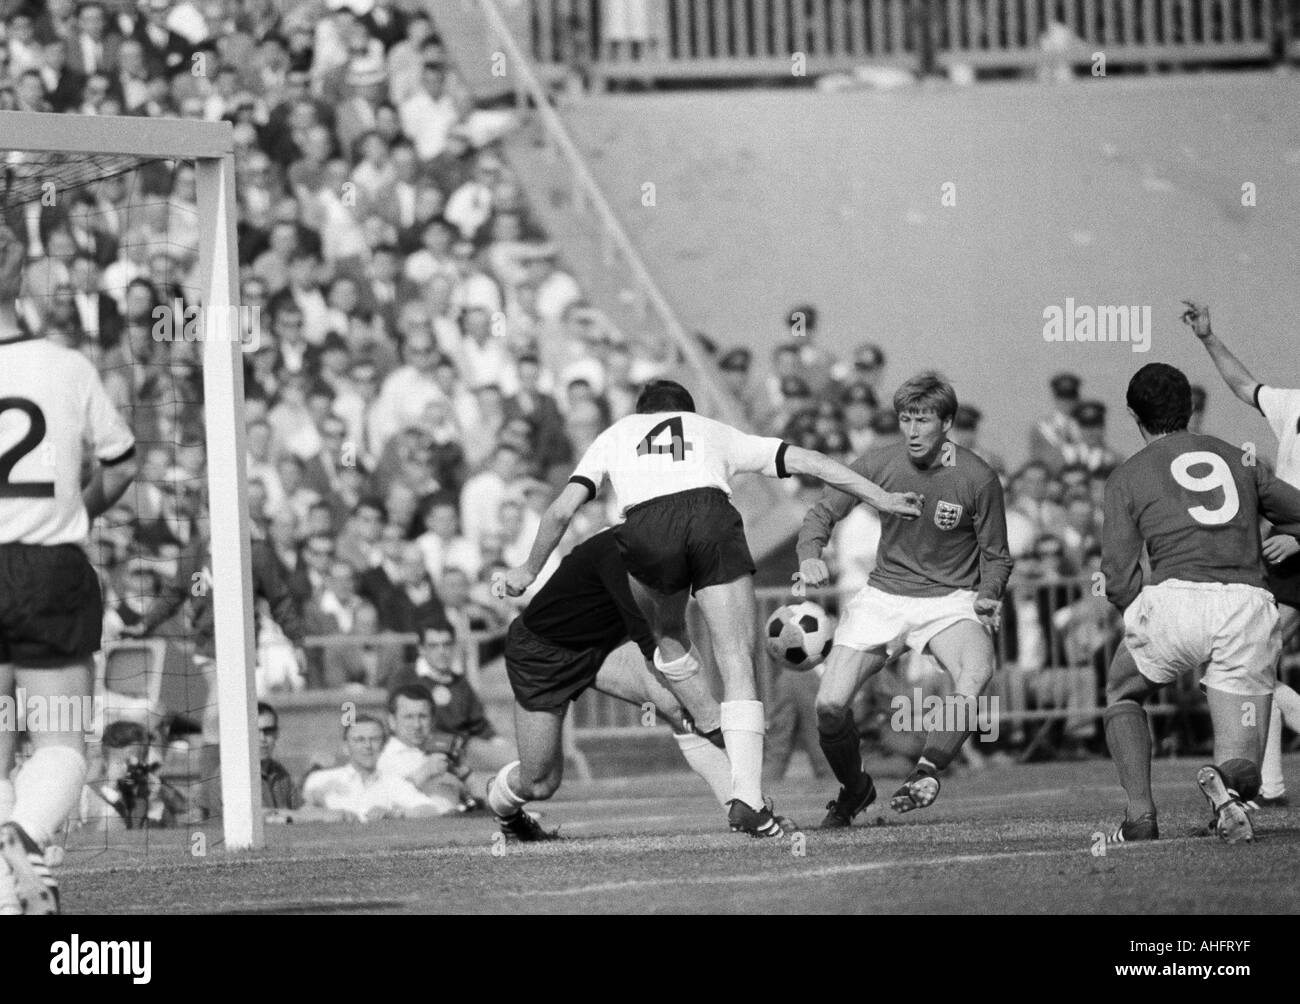 football, international match, 1968, Niedersachsen Stadium in Hanover, Germany versus England 1:0, scene of the match, f.l.t.r. Berti Vogts (FRG, 2), keeper Horst Wolter (FRG), Ludwig Mueller (FRG, 4), Colin Bell (England), Mike Summerbee (England, 9) - Stock Image